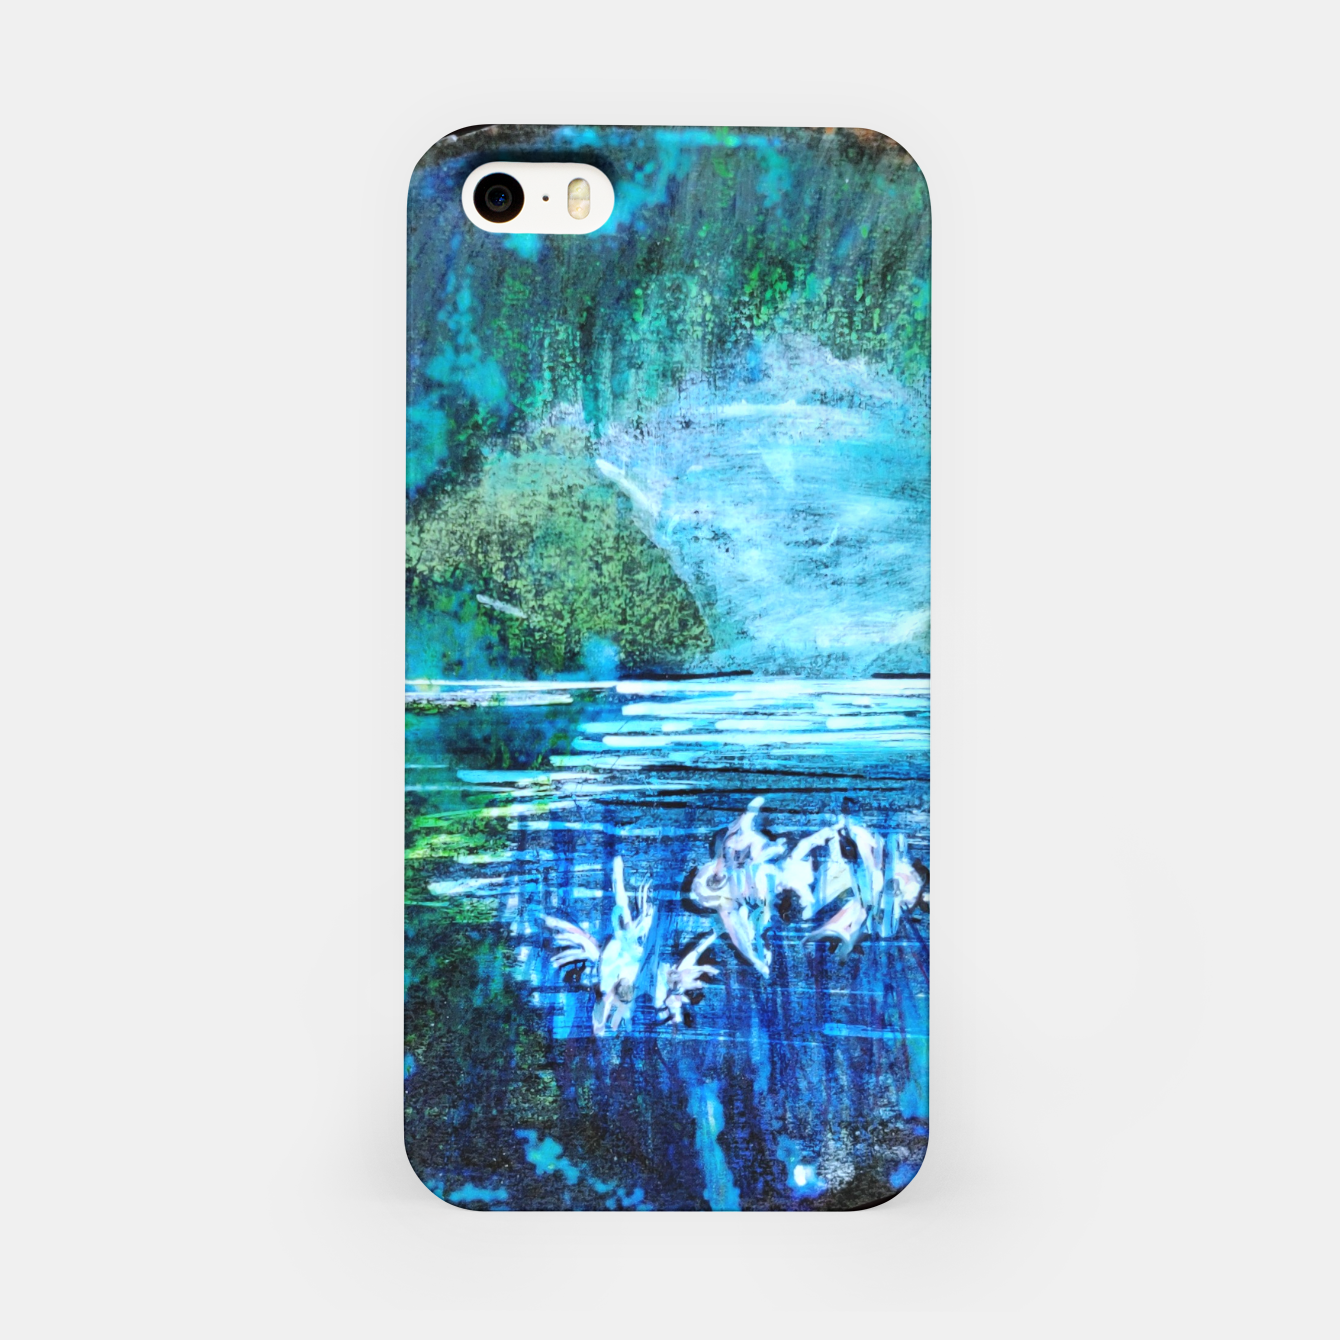 Image of lost and found world 2 brain art for paratissima 19 Yulia A Korneva mri immage iPhone Case - Live Heroes